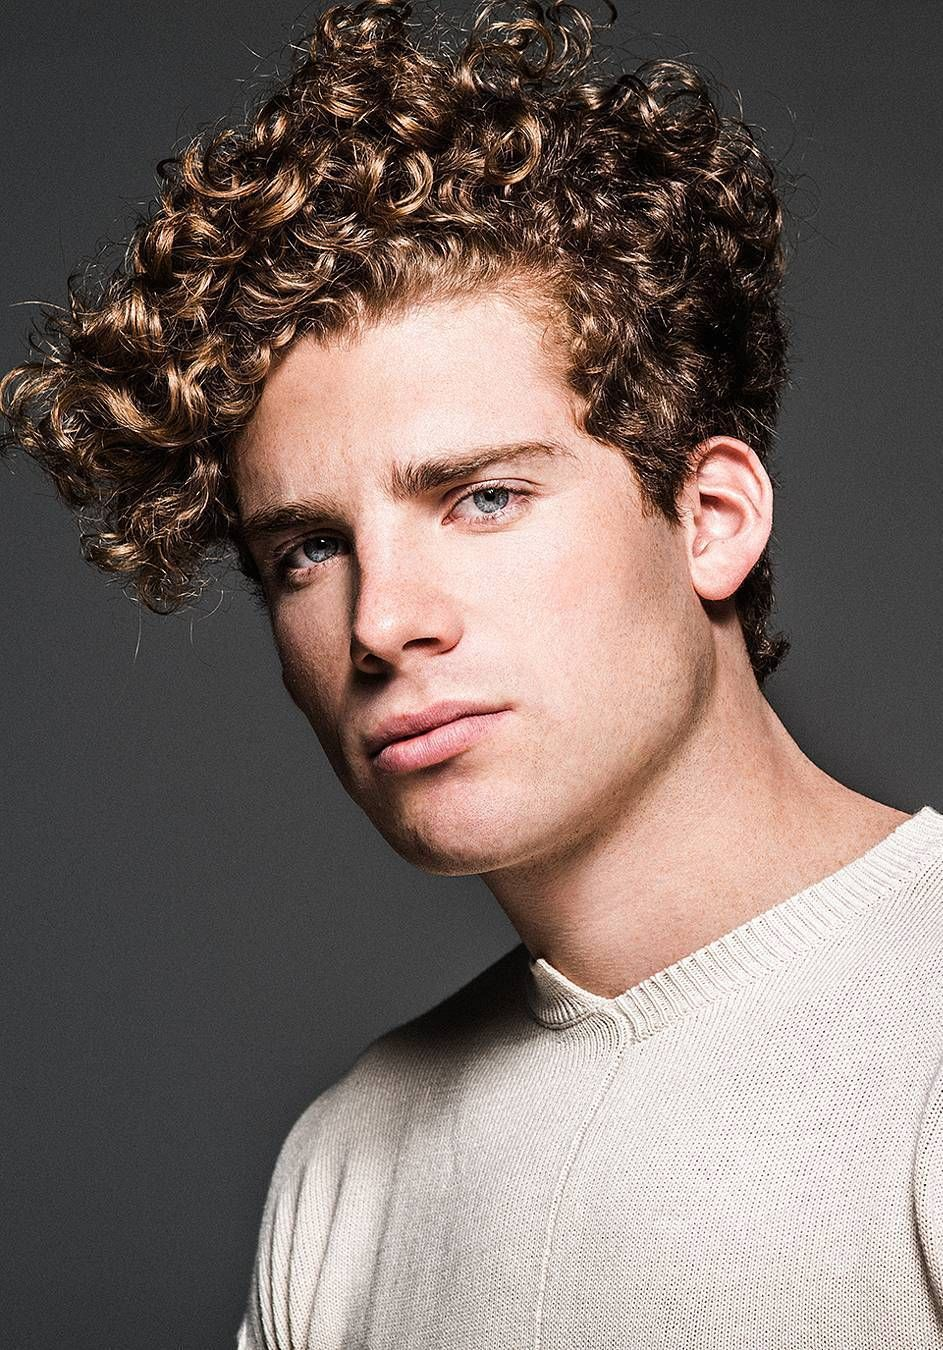 40 Modern Men S Hairstyles For Curly Hair That Will Change Your Look In 2020 Long Curly Hair Men Men S Curly Hairstyles Curly Natural Curls